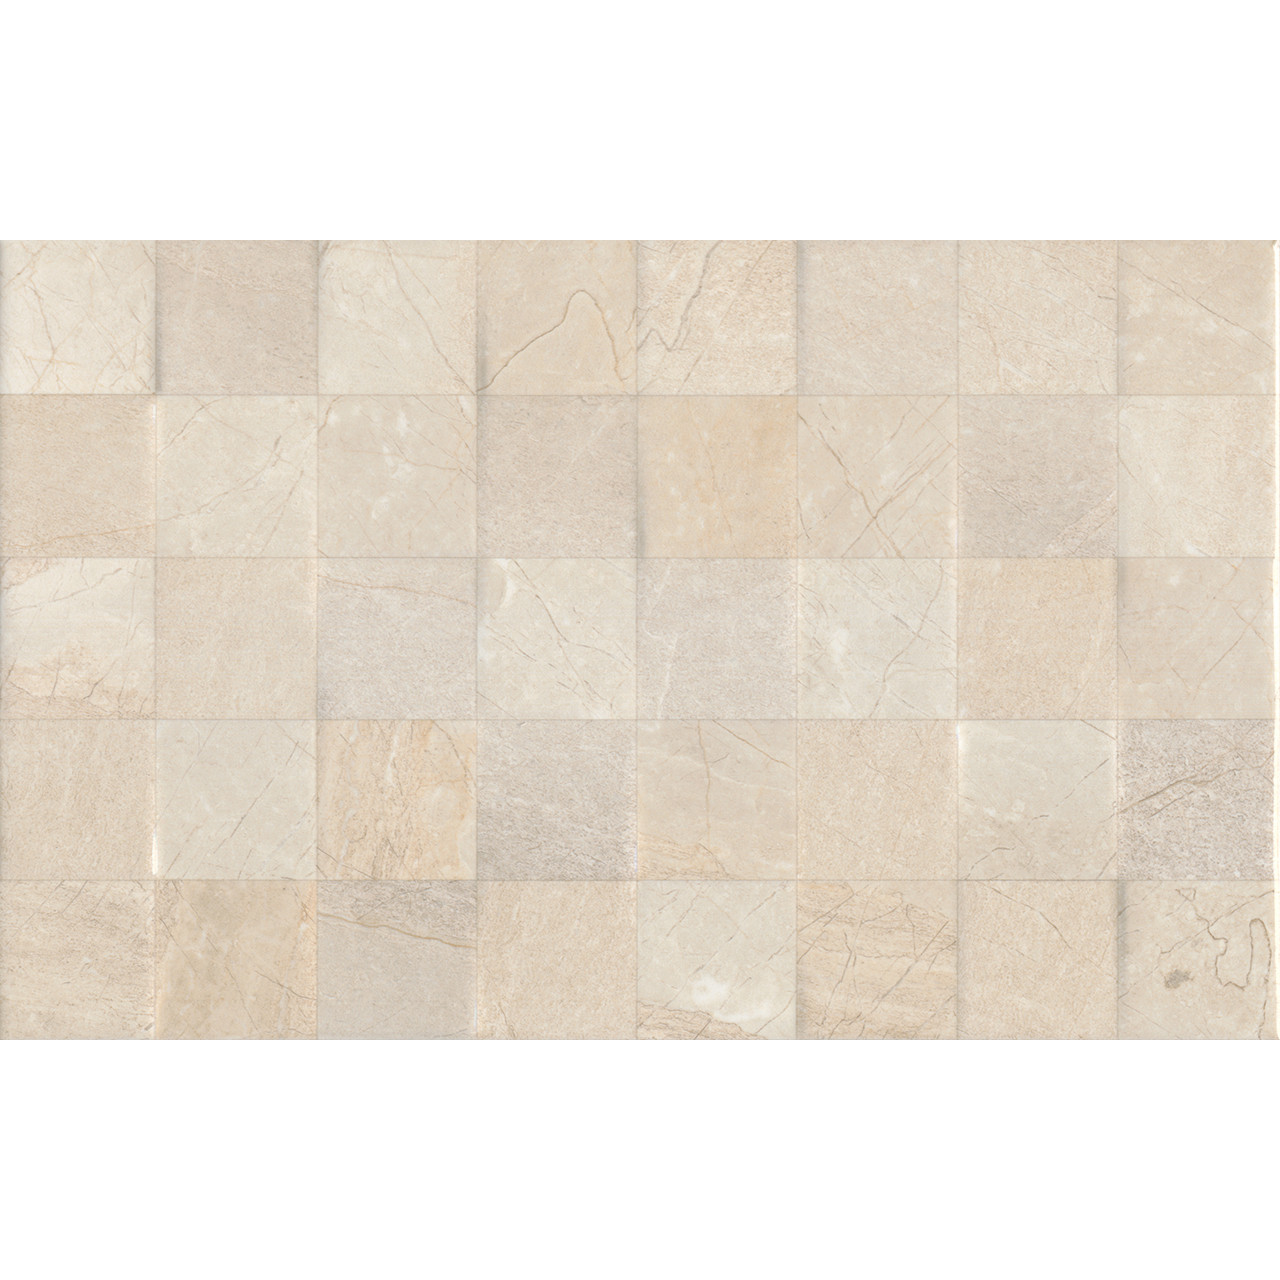 Crema Dorsia Light Décor 25x50 Ceramic Tile